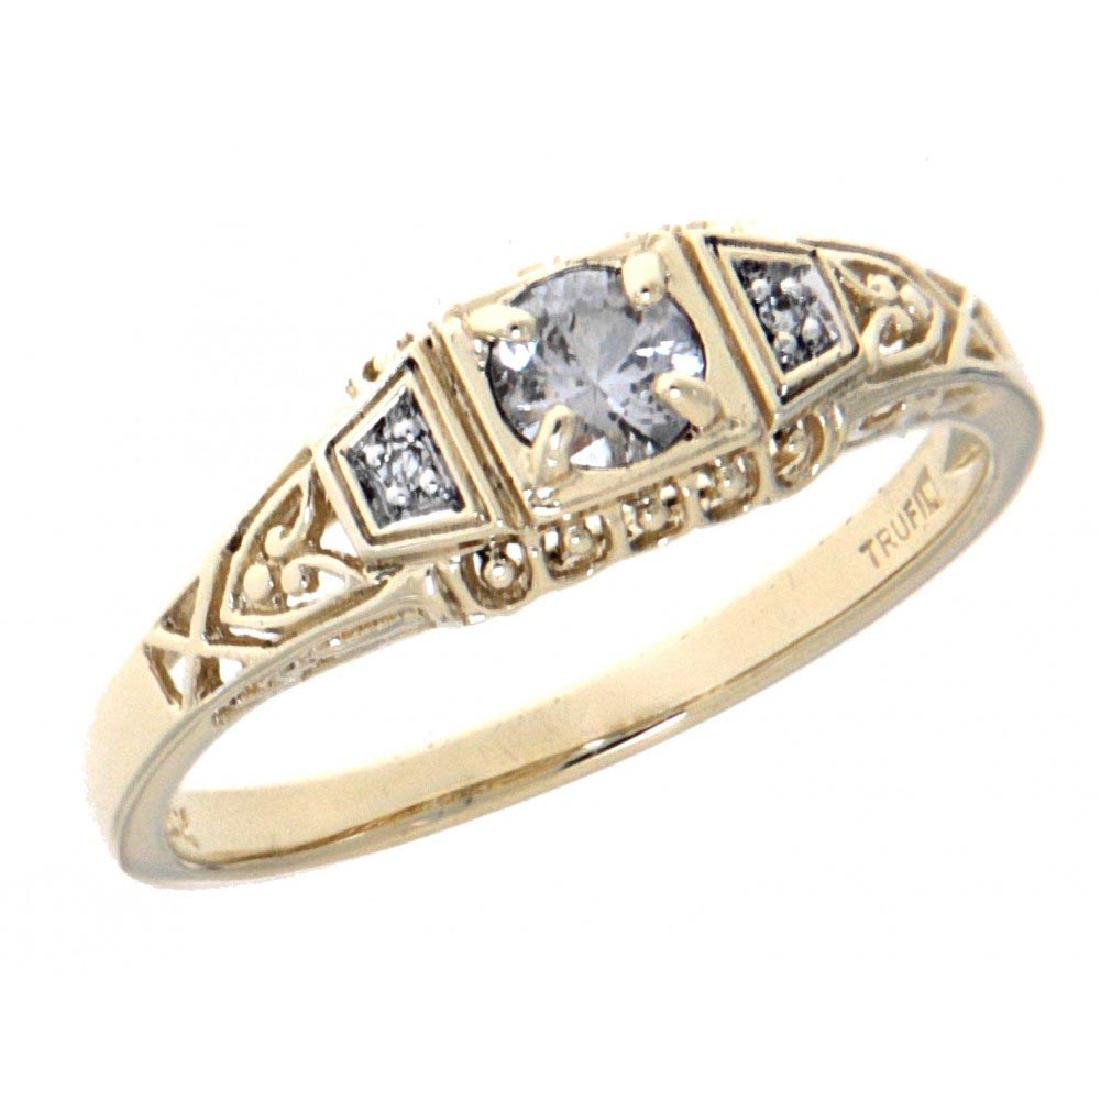 White Sapphire Art Deco Style 14kt Yellow Gold Filigree